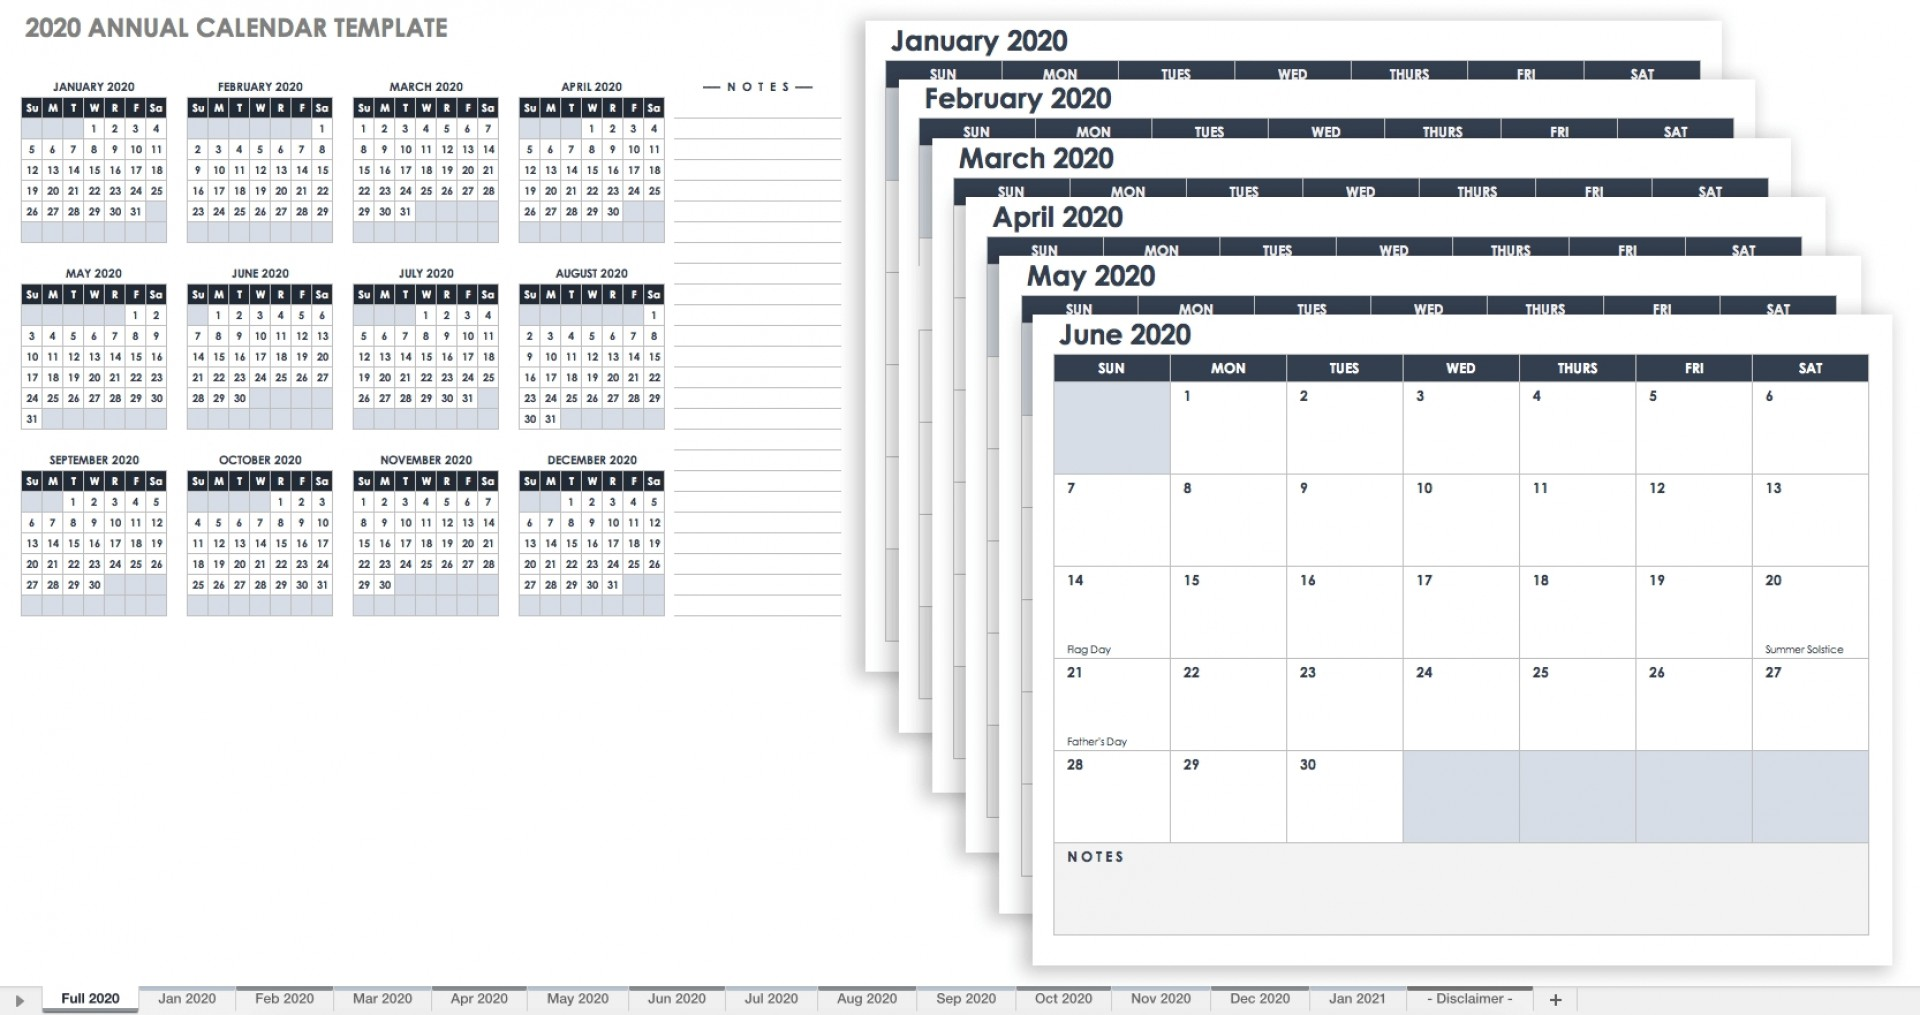 003 Awful Free Excel Calendar Template Idea  2020 Monthly Download Biweekly Payroll 20181920